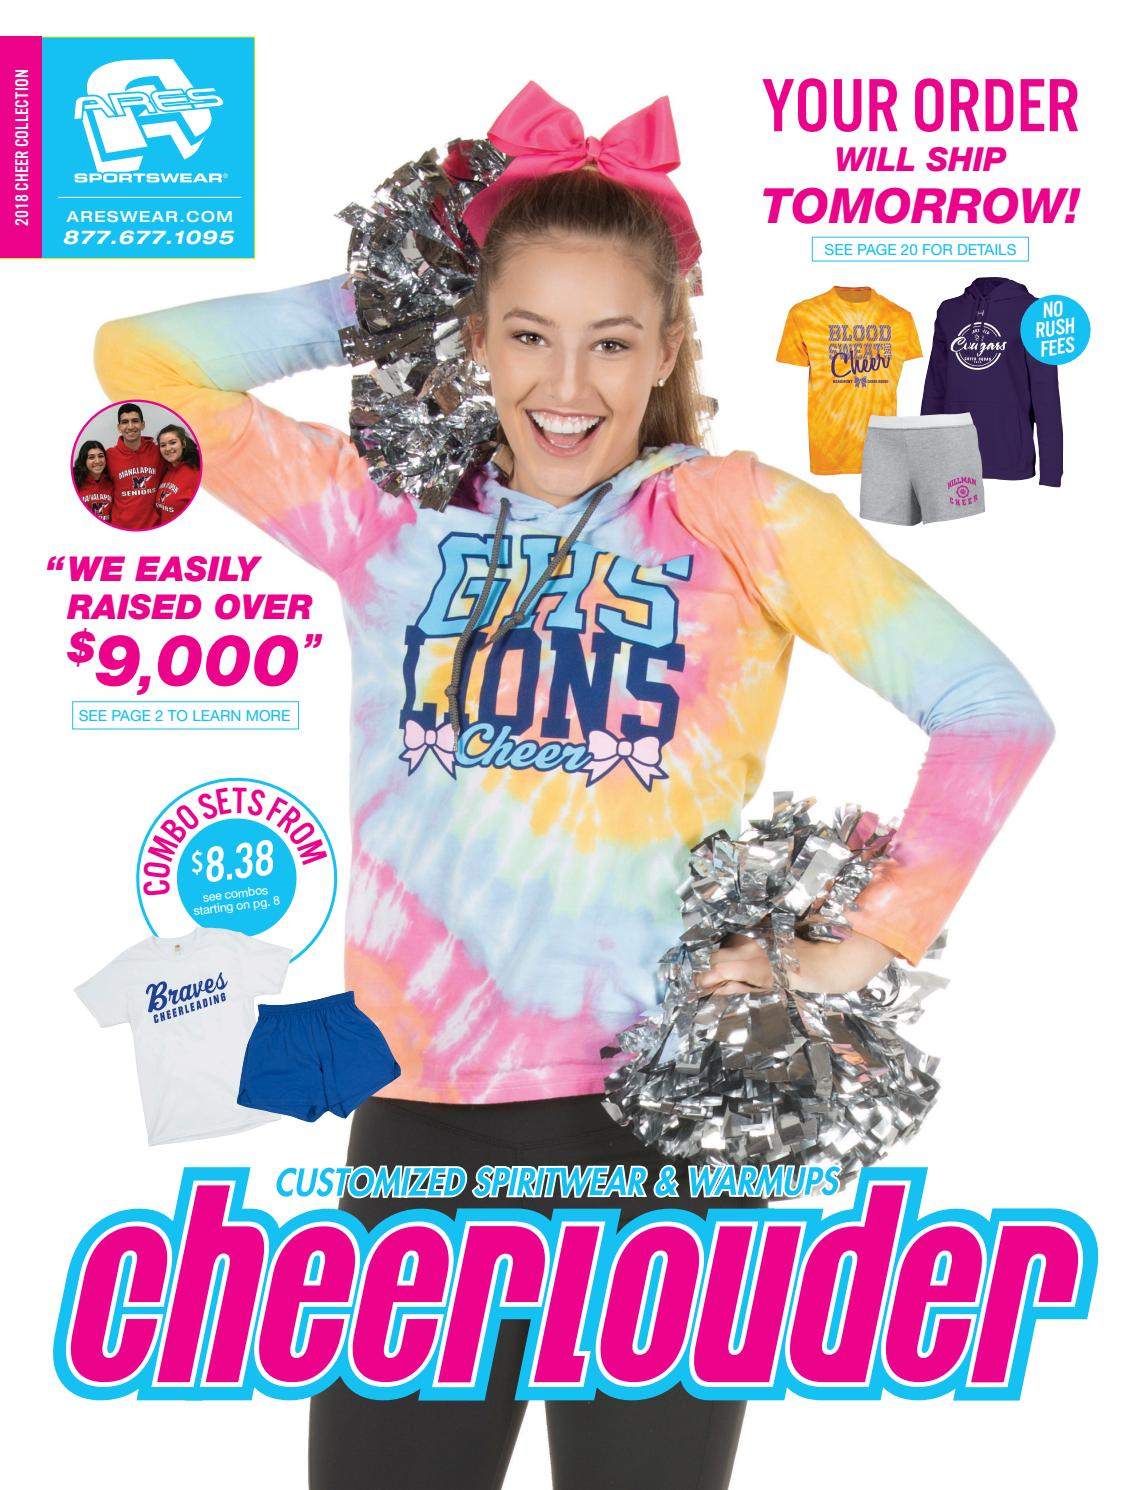 9be6f85db9c0 2018 Ares Sportswear Cheerlouder Catalog by Ares Sportswear - issuu